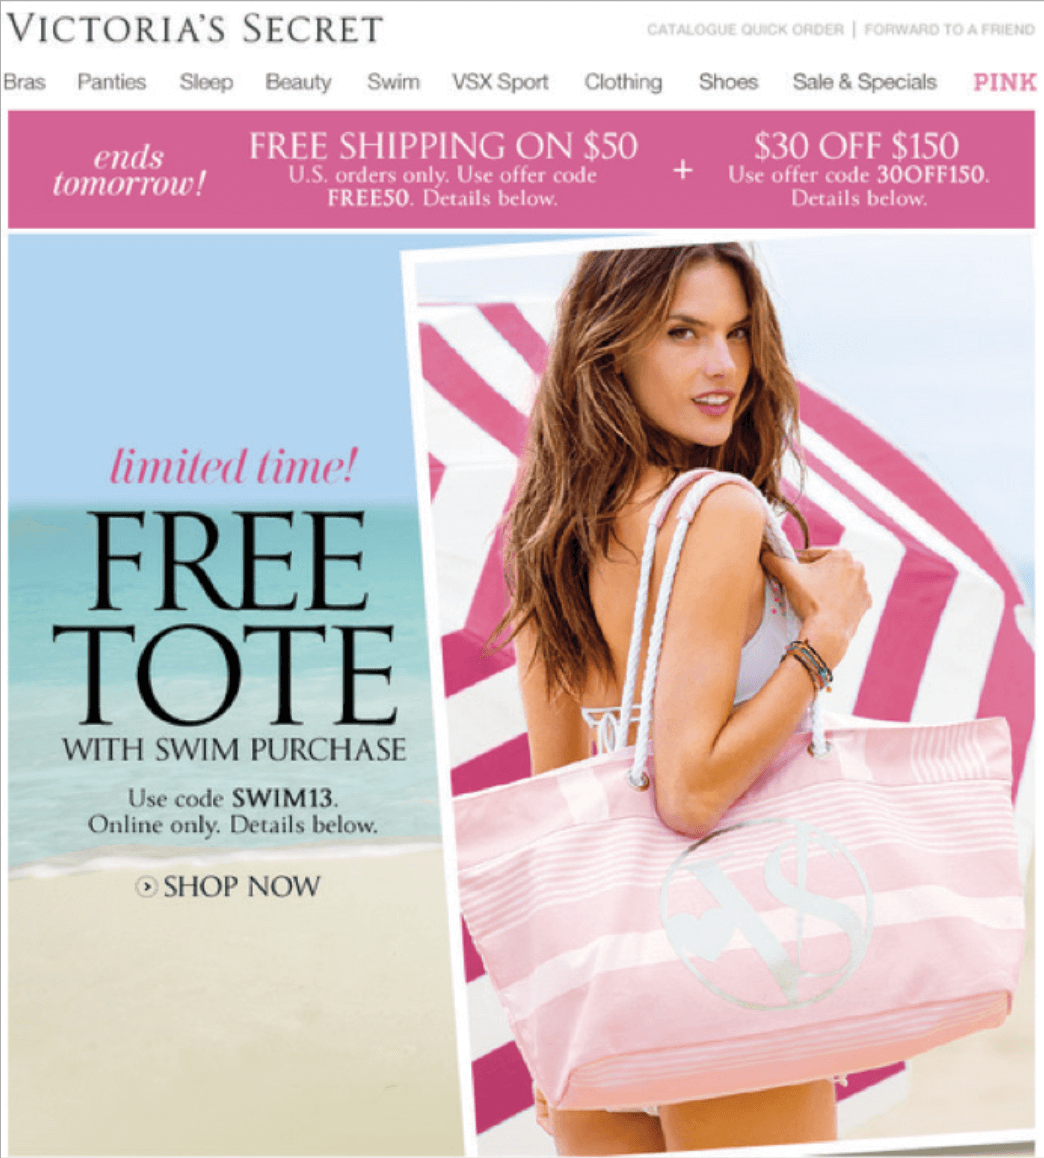 Picture 8 – Victoria's Secret seasonal offer: free designer tote bag with the VS logo for each customer who purchases a swimsuit.